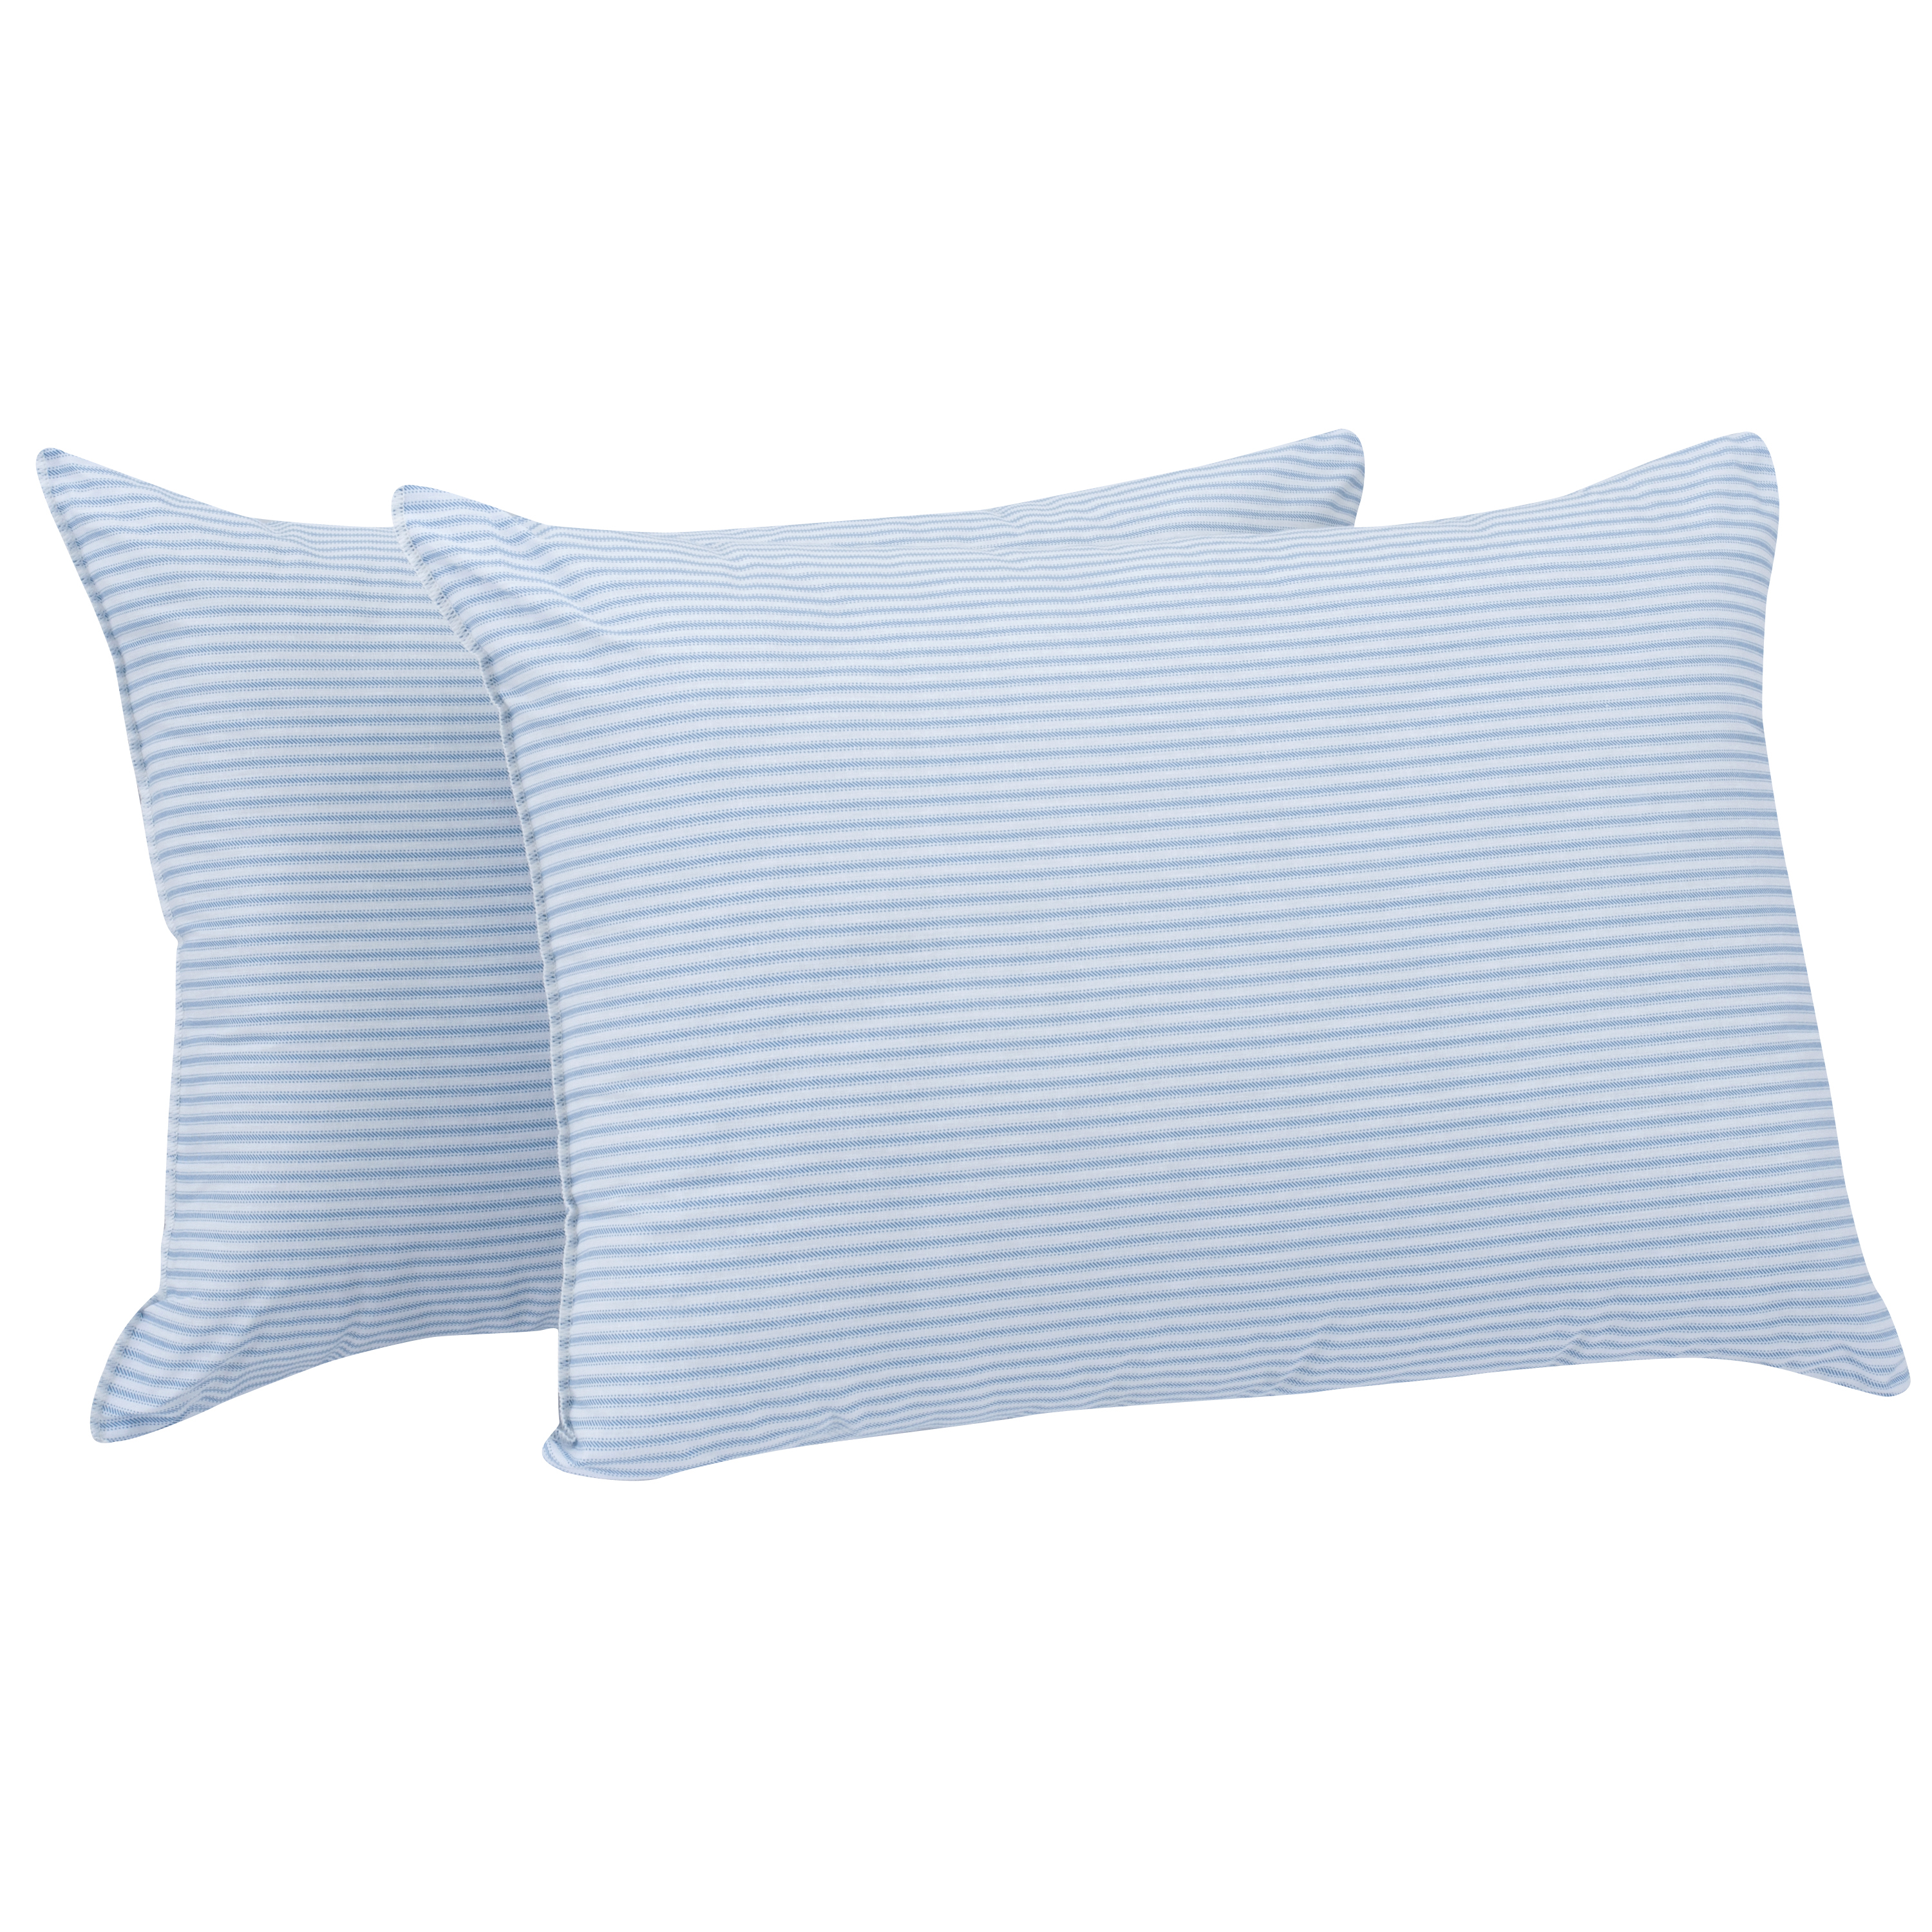 "Mainstays HUGE Pillow 20"" x 28"" in Blue and White Stripe Set of 2"